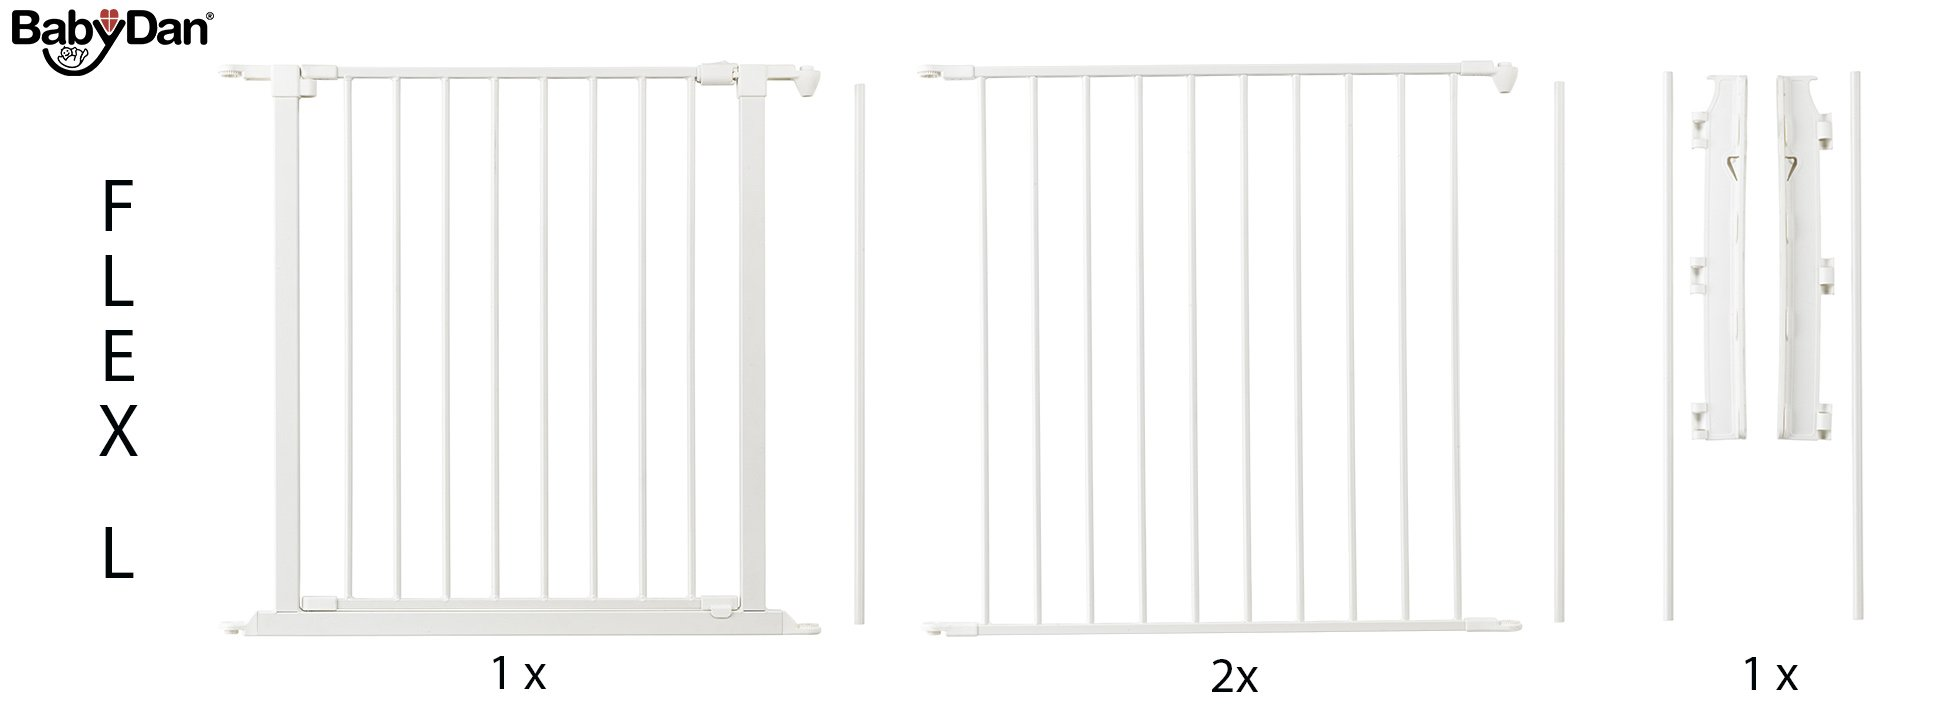 BabyDan Configure (Large 90-223cm, White)  Only configure system fulfilling newest European safety standard Multi purpose room divider and gate for wider openings Flexible and easy to fit 10